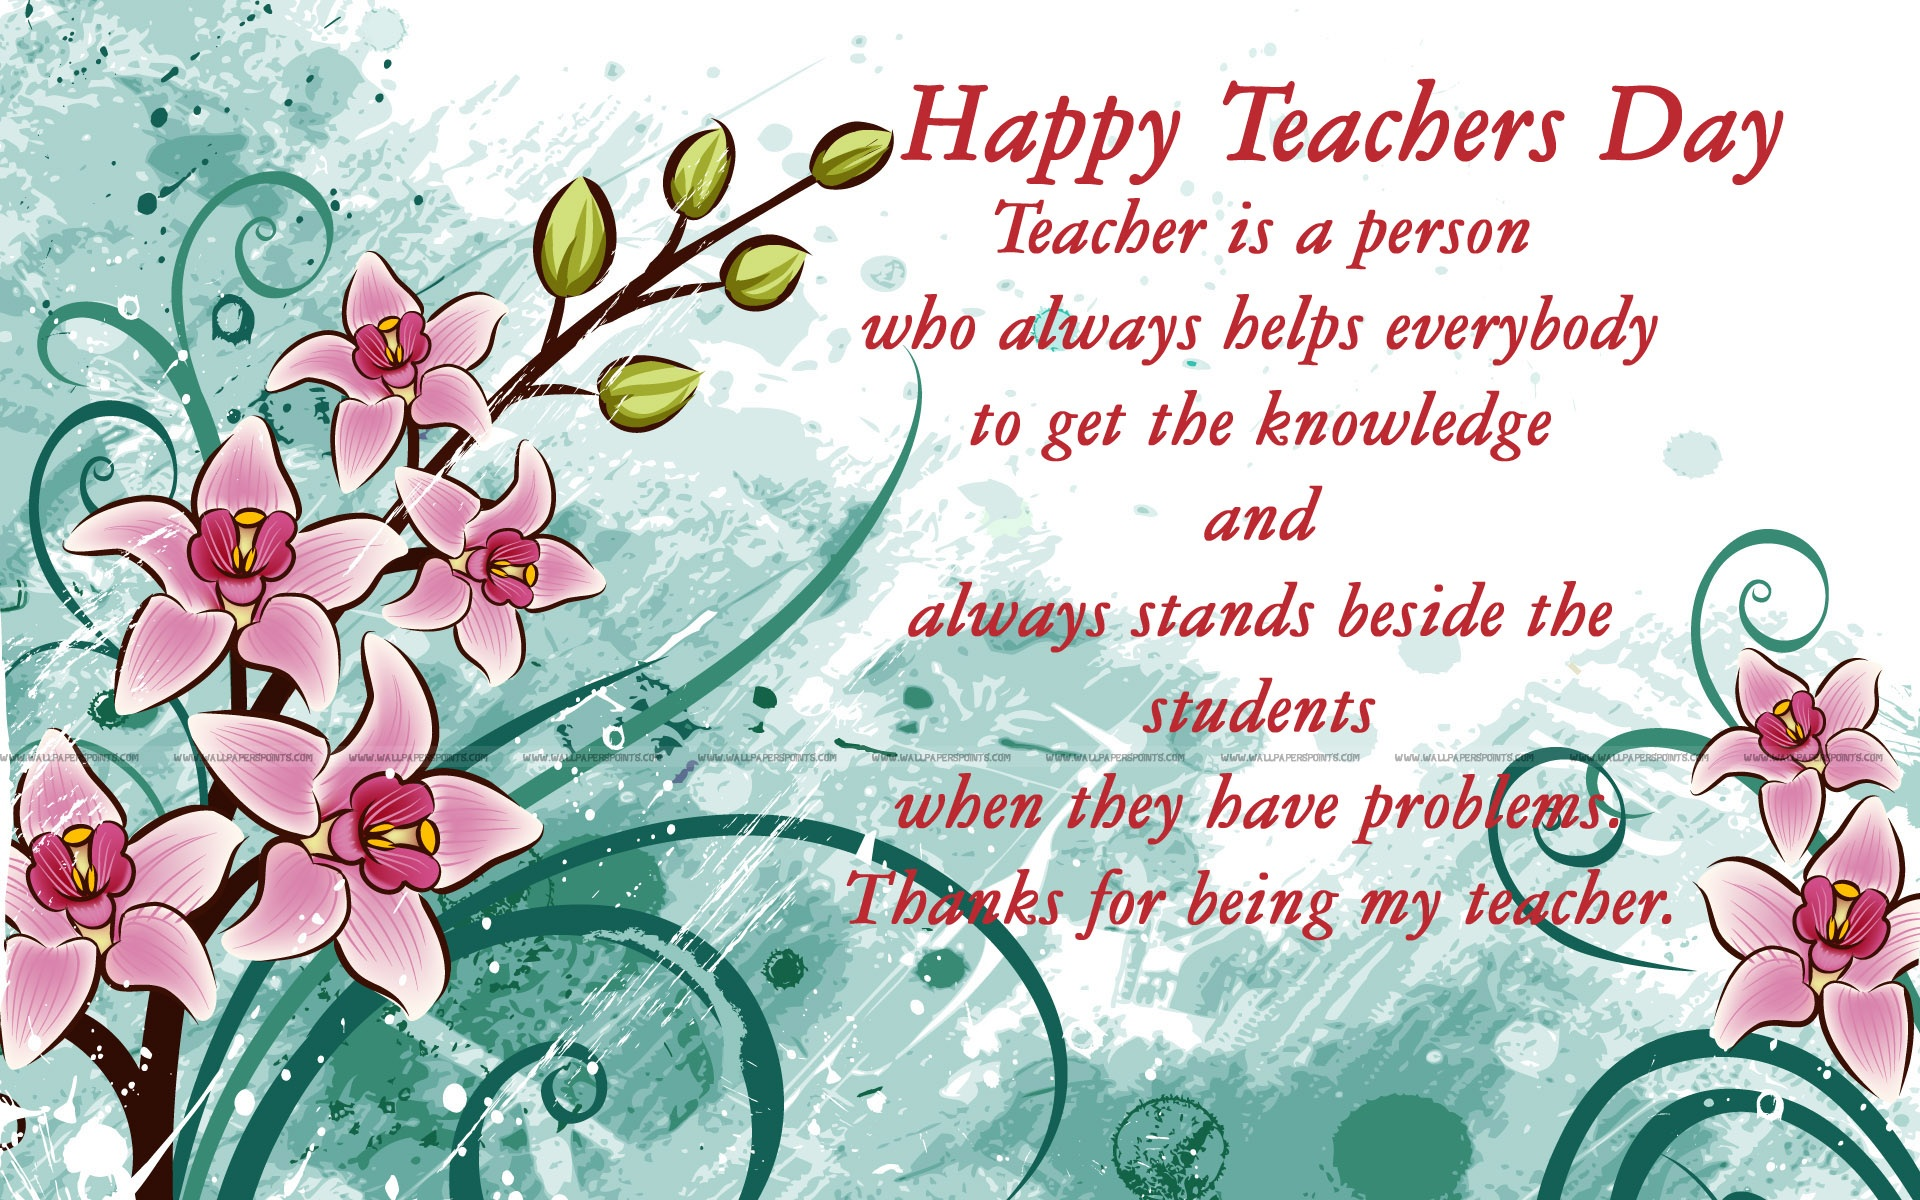 Teachers Day HD Images U0026 Wallpapers Free Download